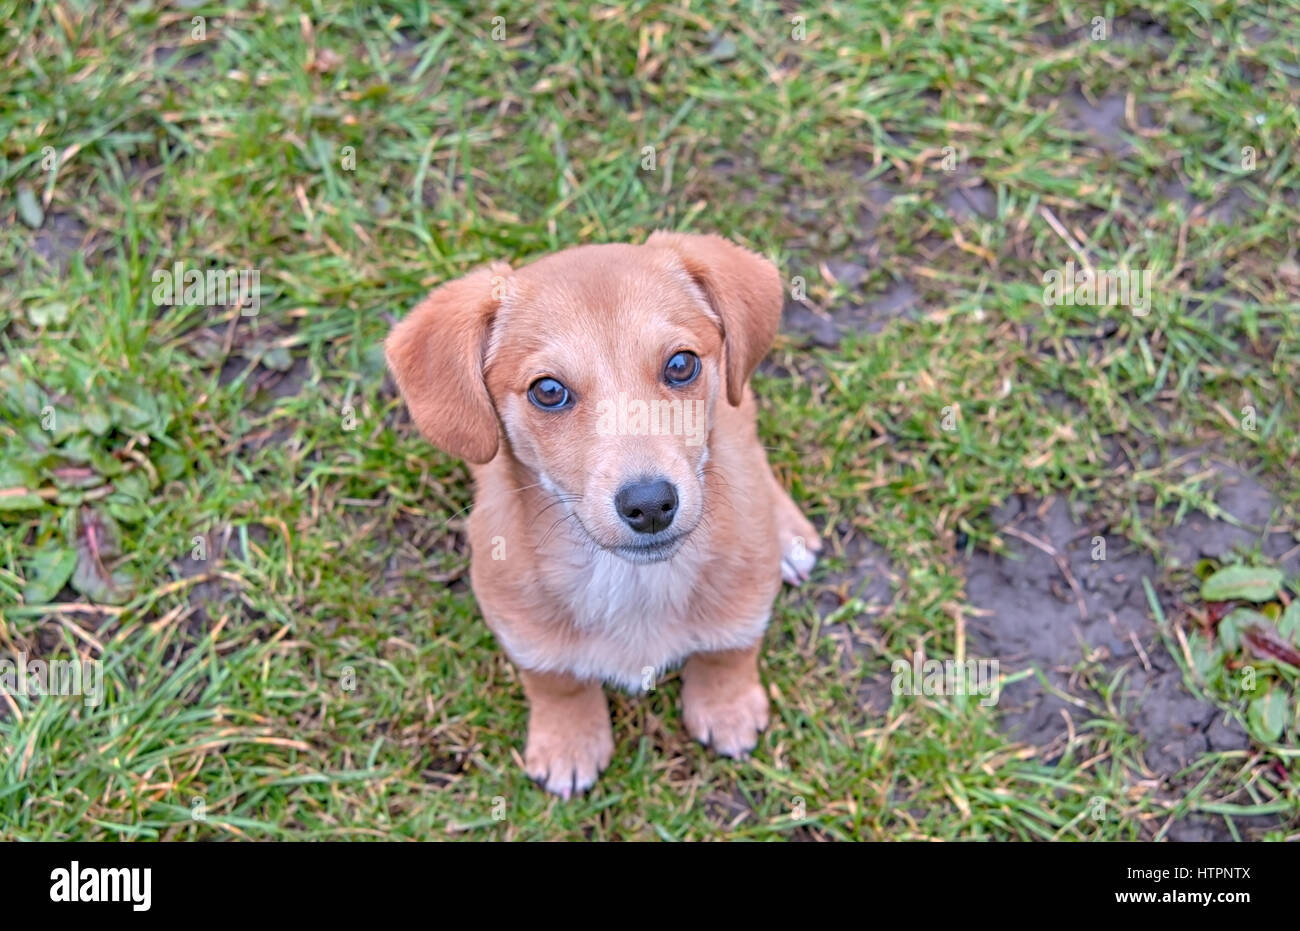 closeup portrait of a dachshund puppy in grass - Stock Image